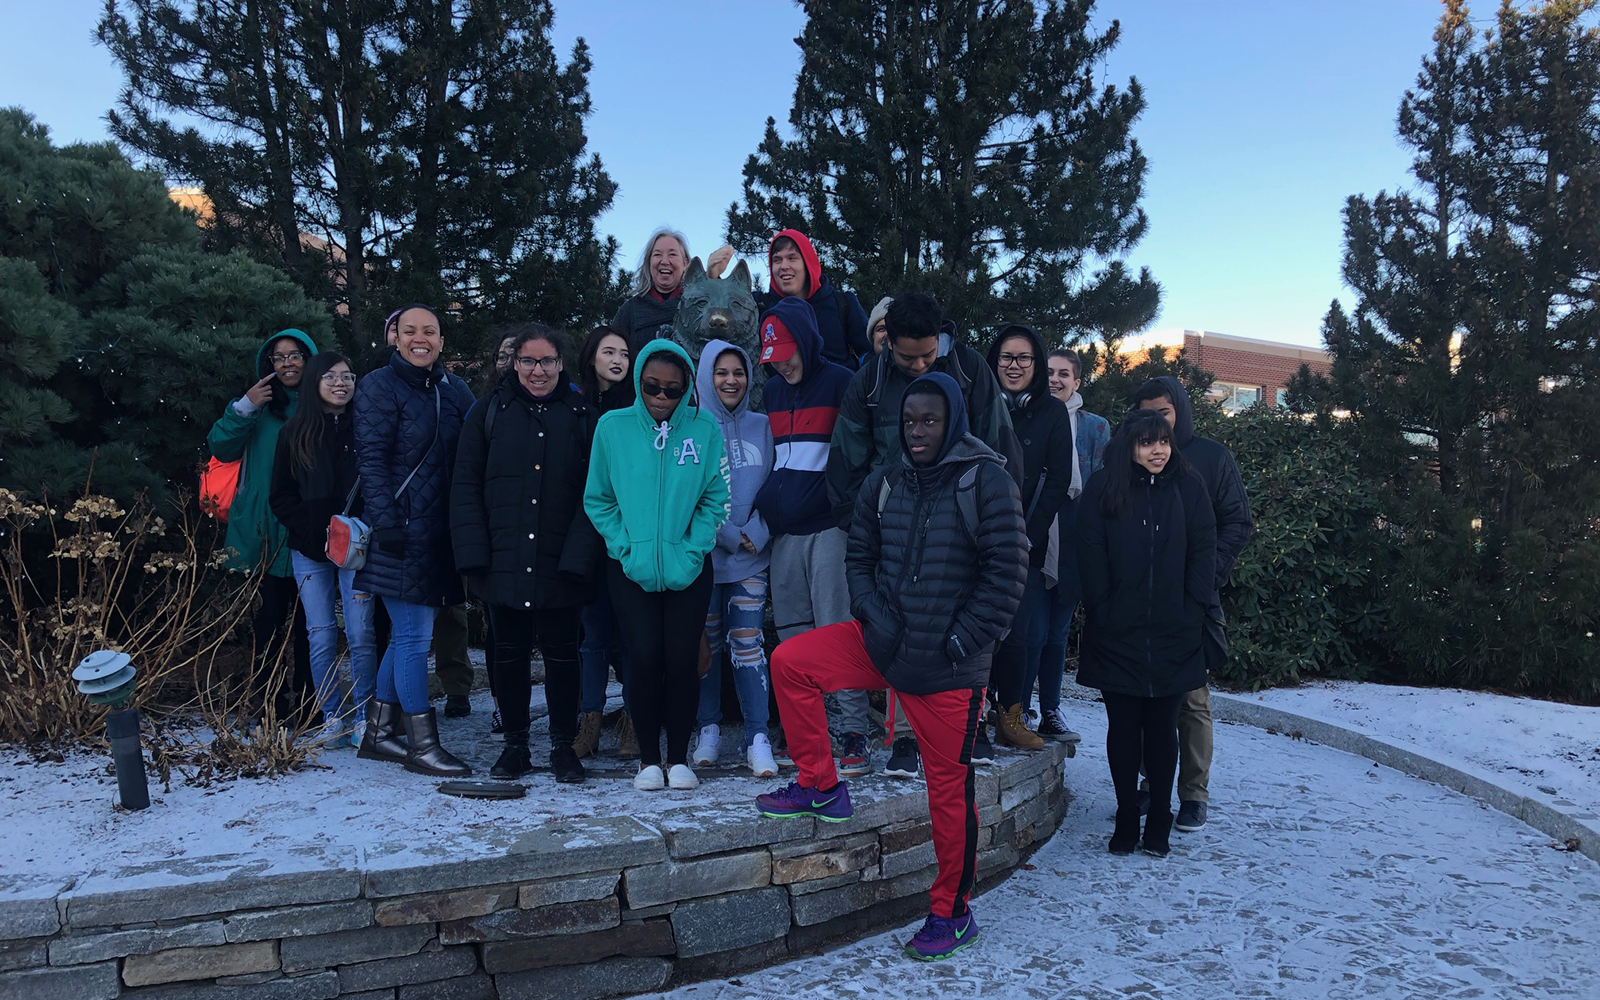 Students from Manchester High take a moment to pose with the statue of Jonathan outside of Gampel Pavilion during their recent visit to the Storrs campus.  (Arminda Kamphausen / UConn School of Business)